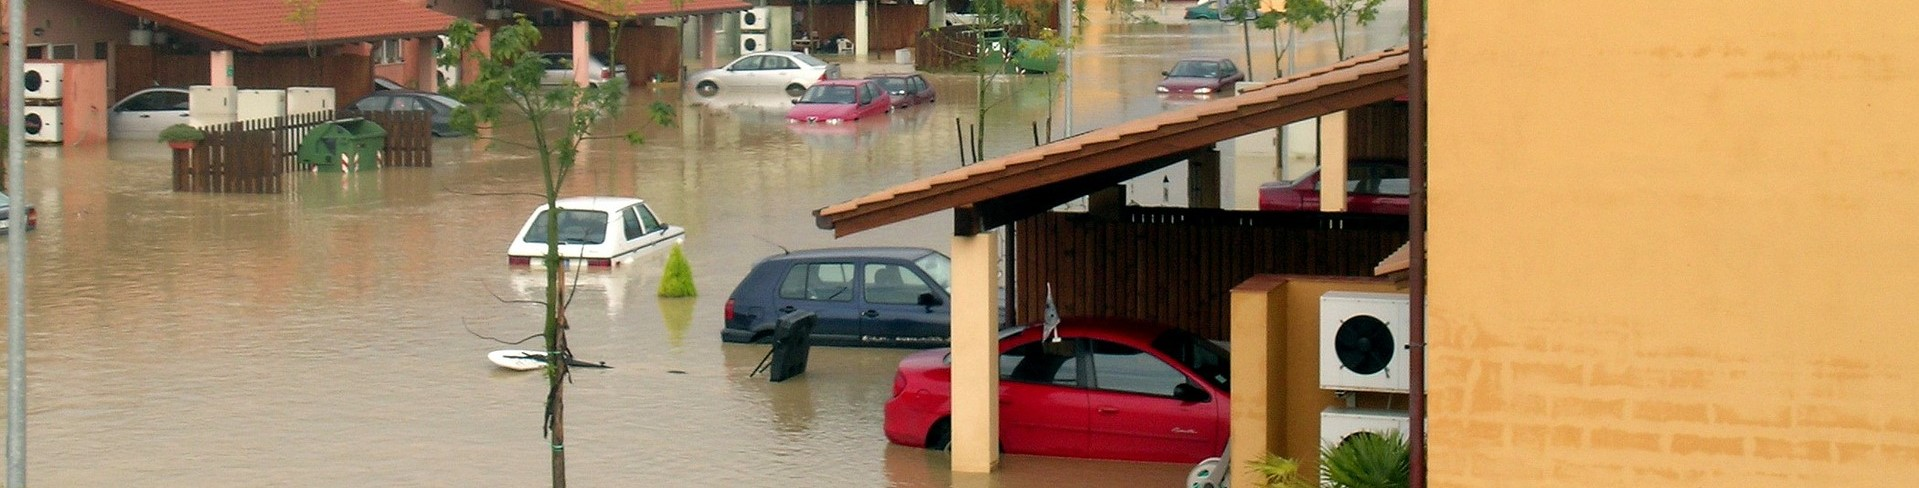 Flooded Cars in a Village - CarDonations4Cancer.org